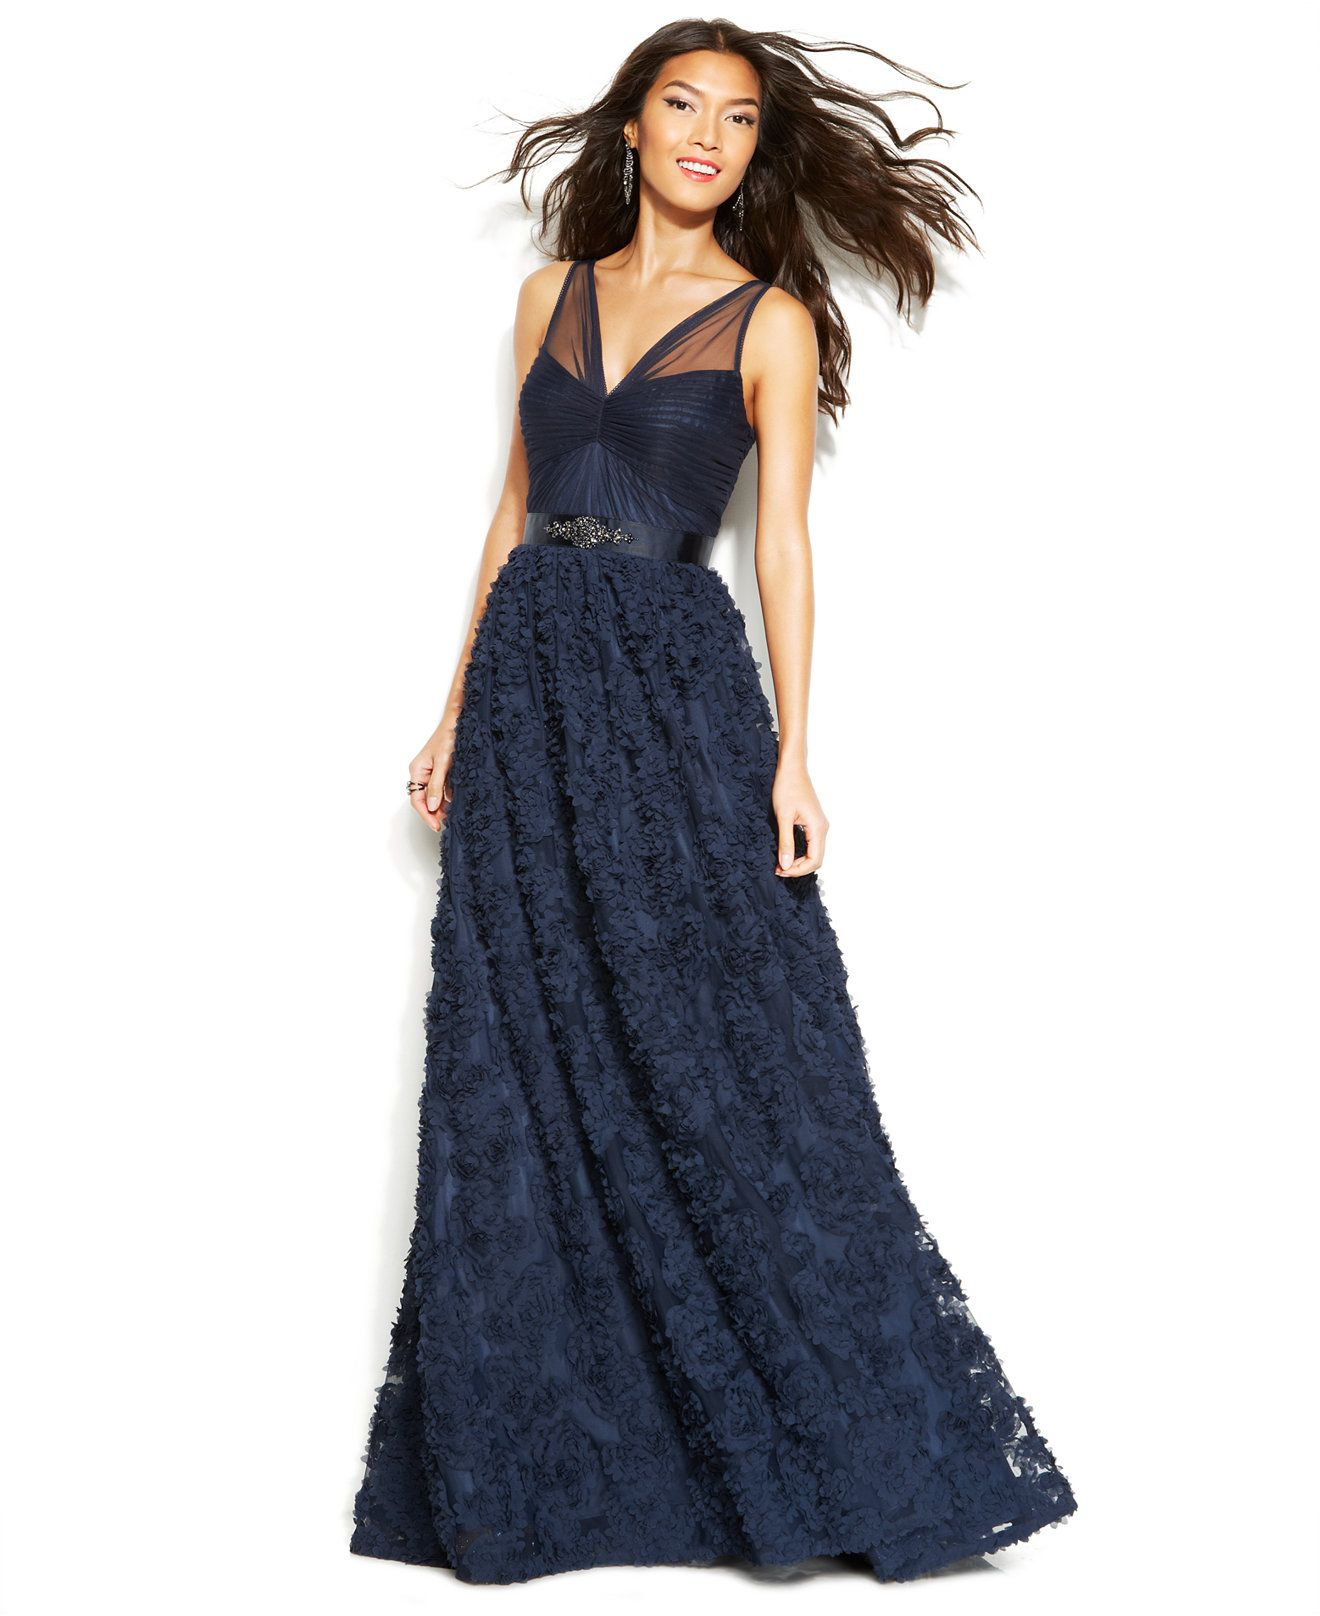 Adrianna Papell Floral Embroidered Illusion Gown - Dresses - Women ...